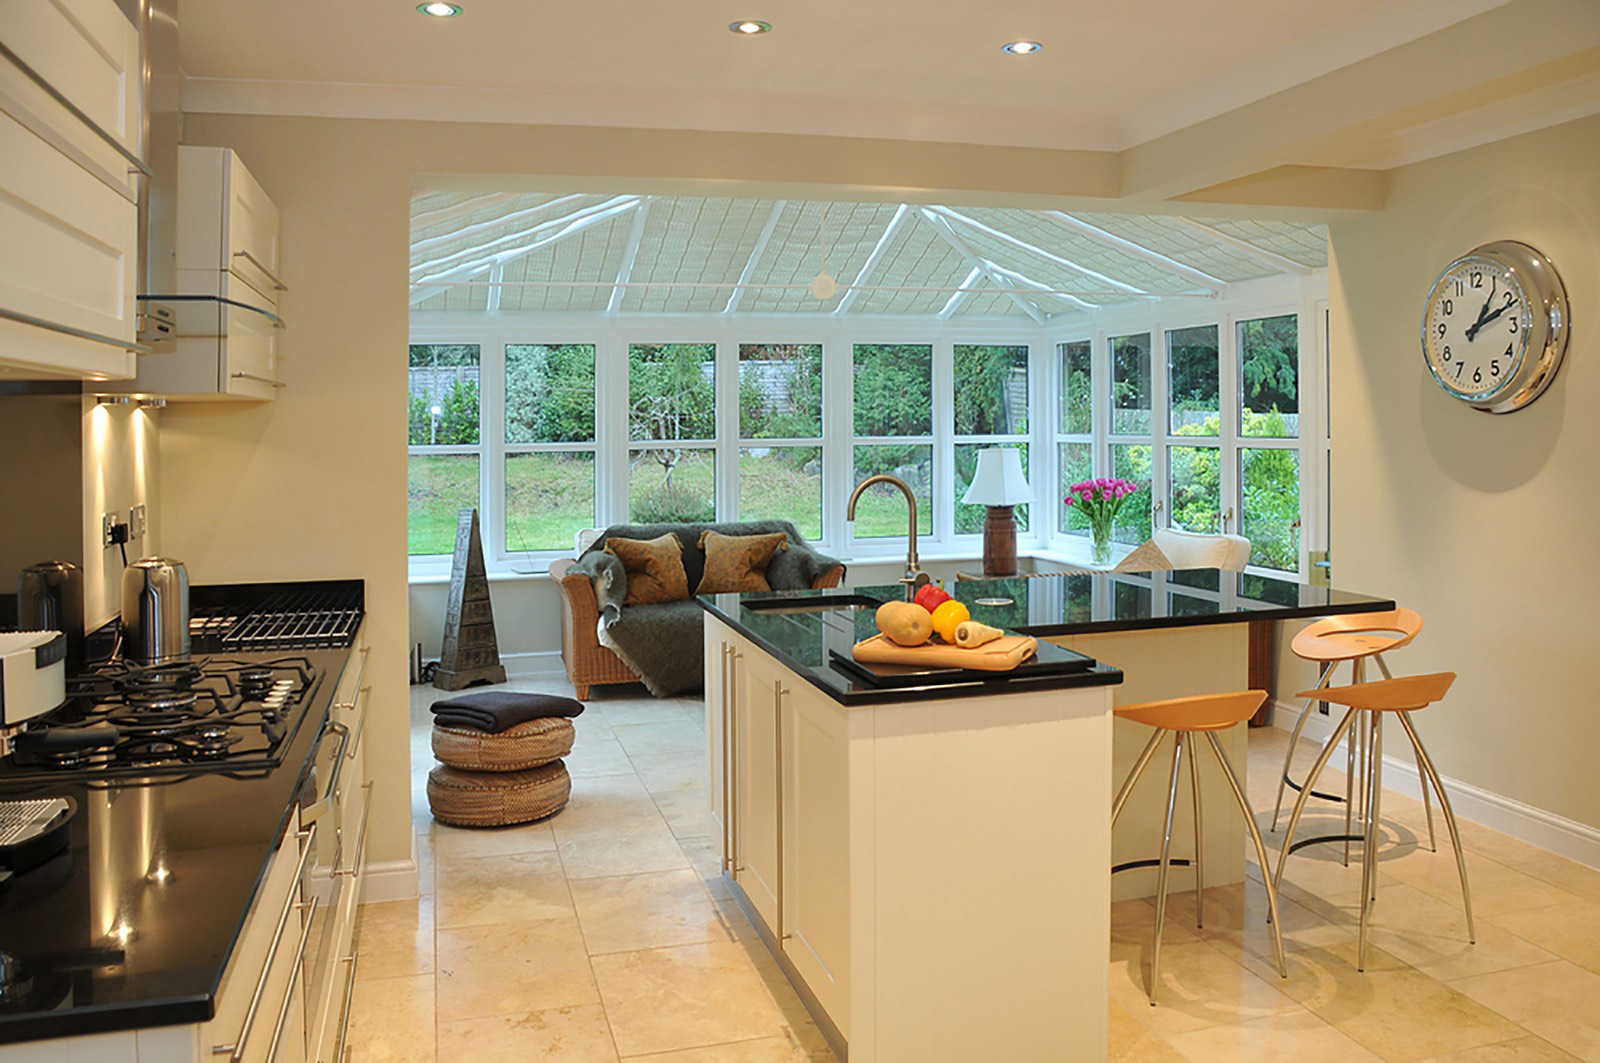 uPVC Lean-To Conservatory Prices, sidcup, dartford